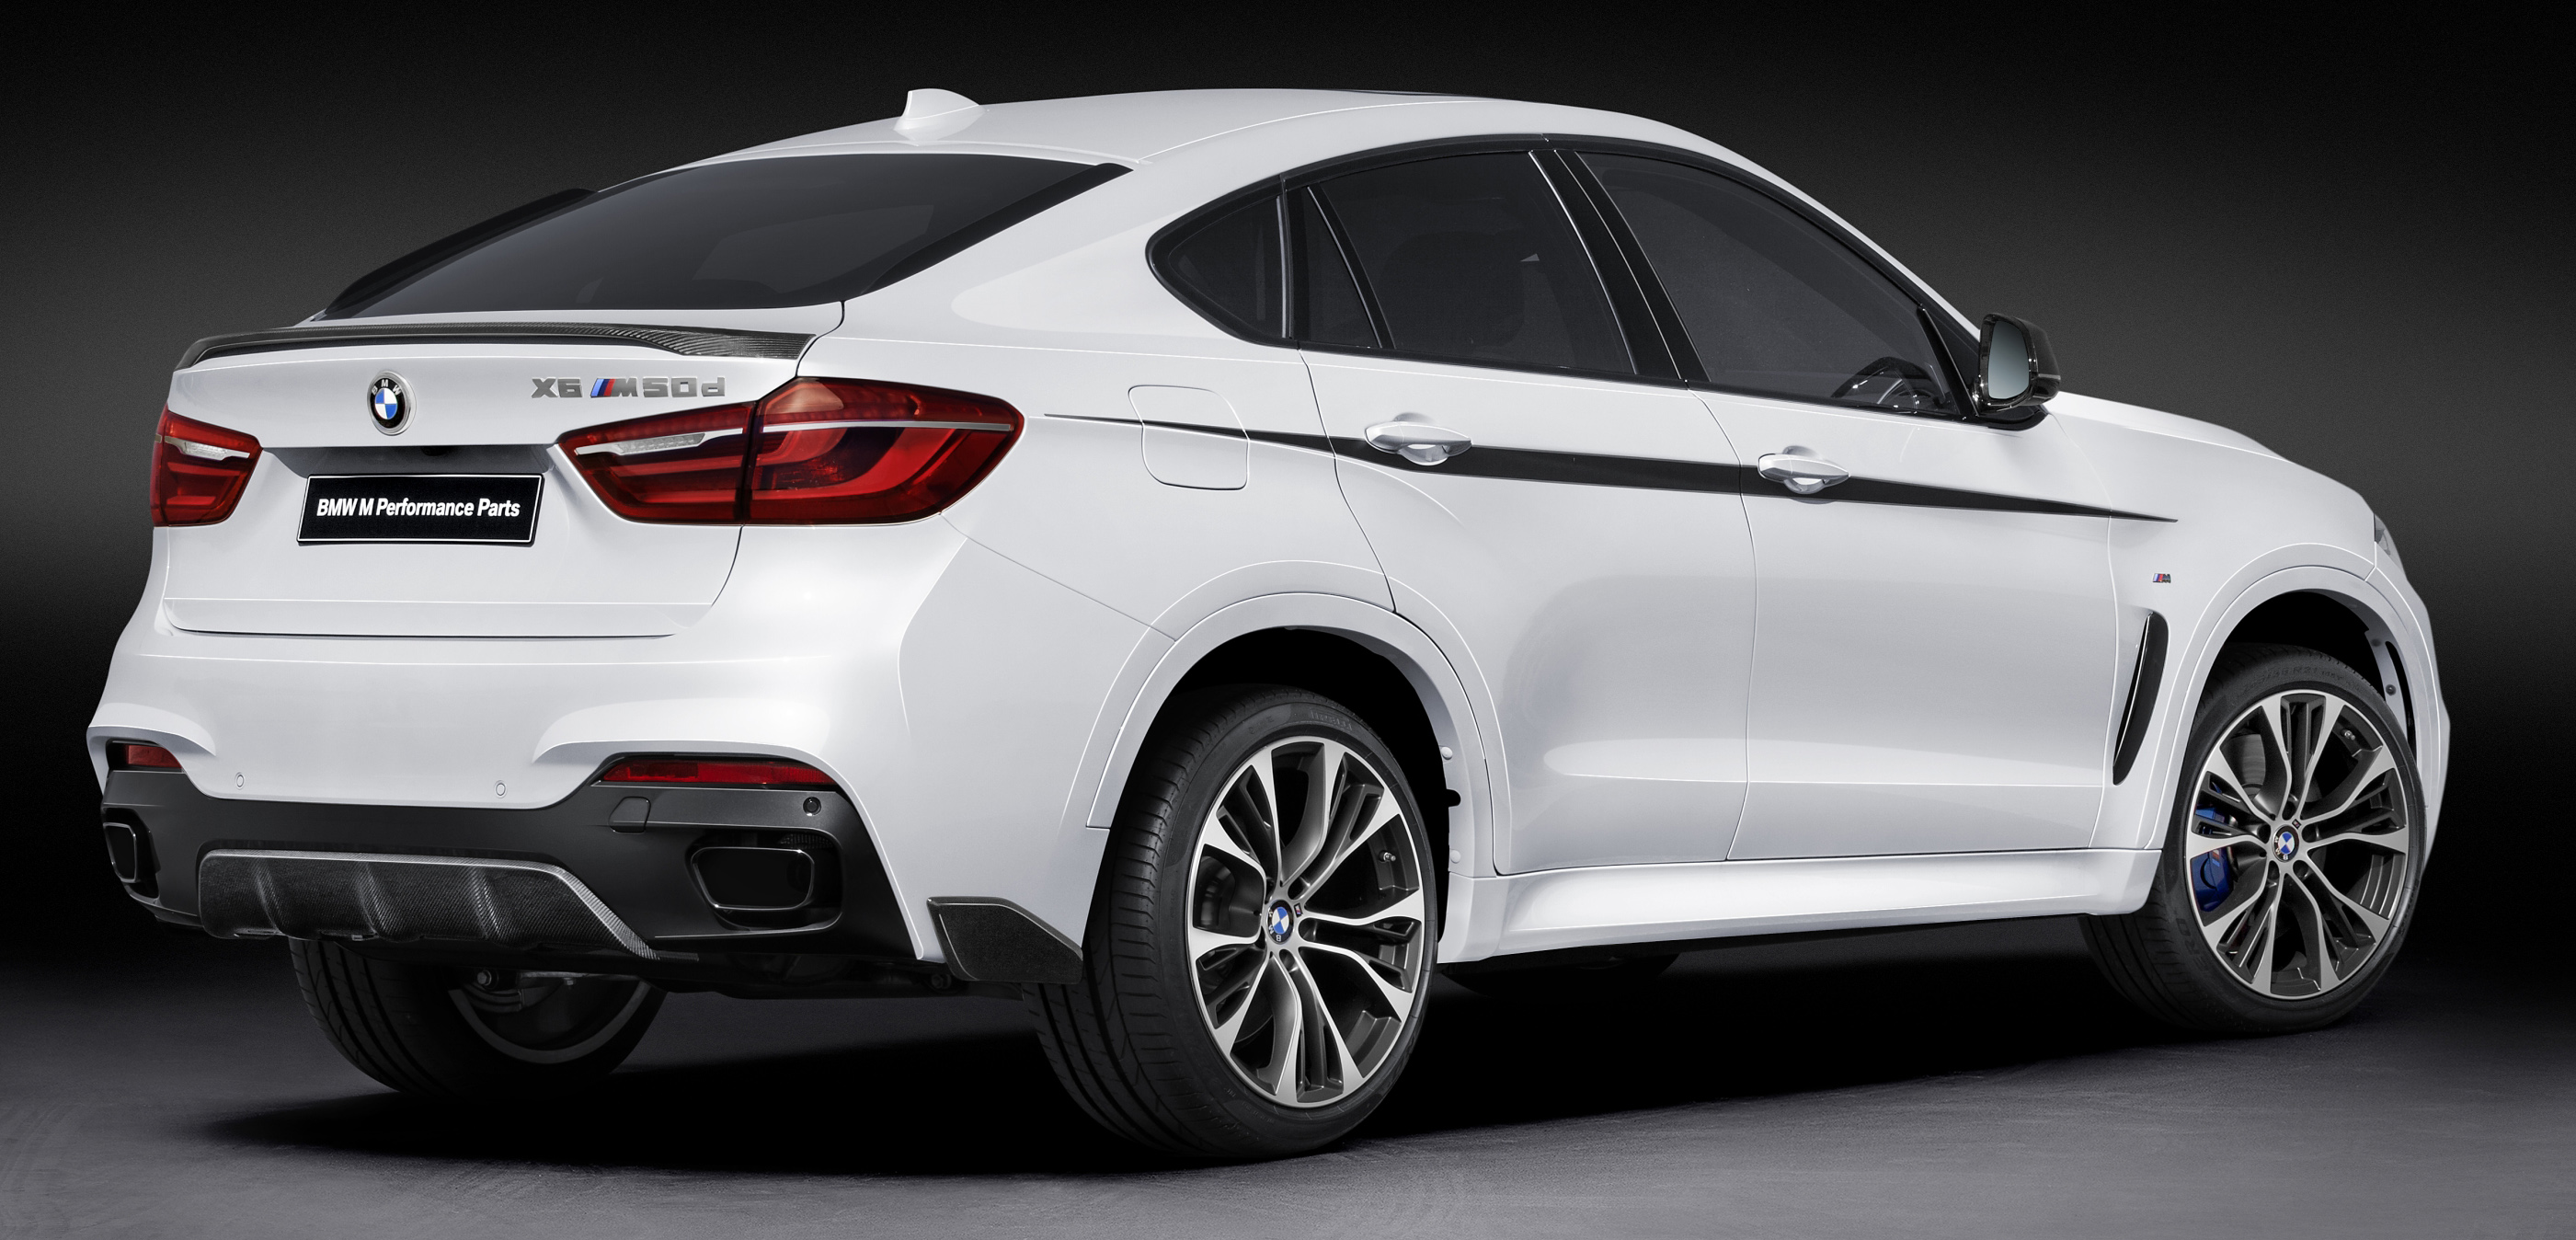 2018 BMW X6 M Performance Parts photo - 4